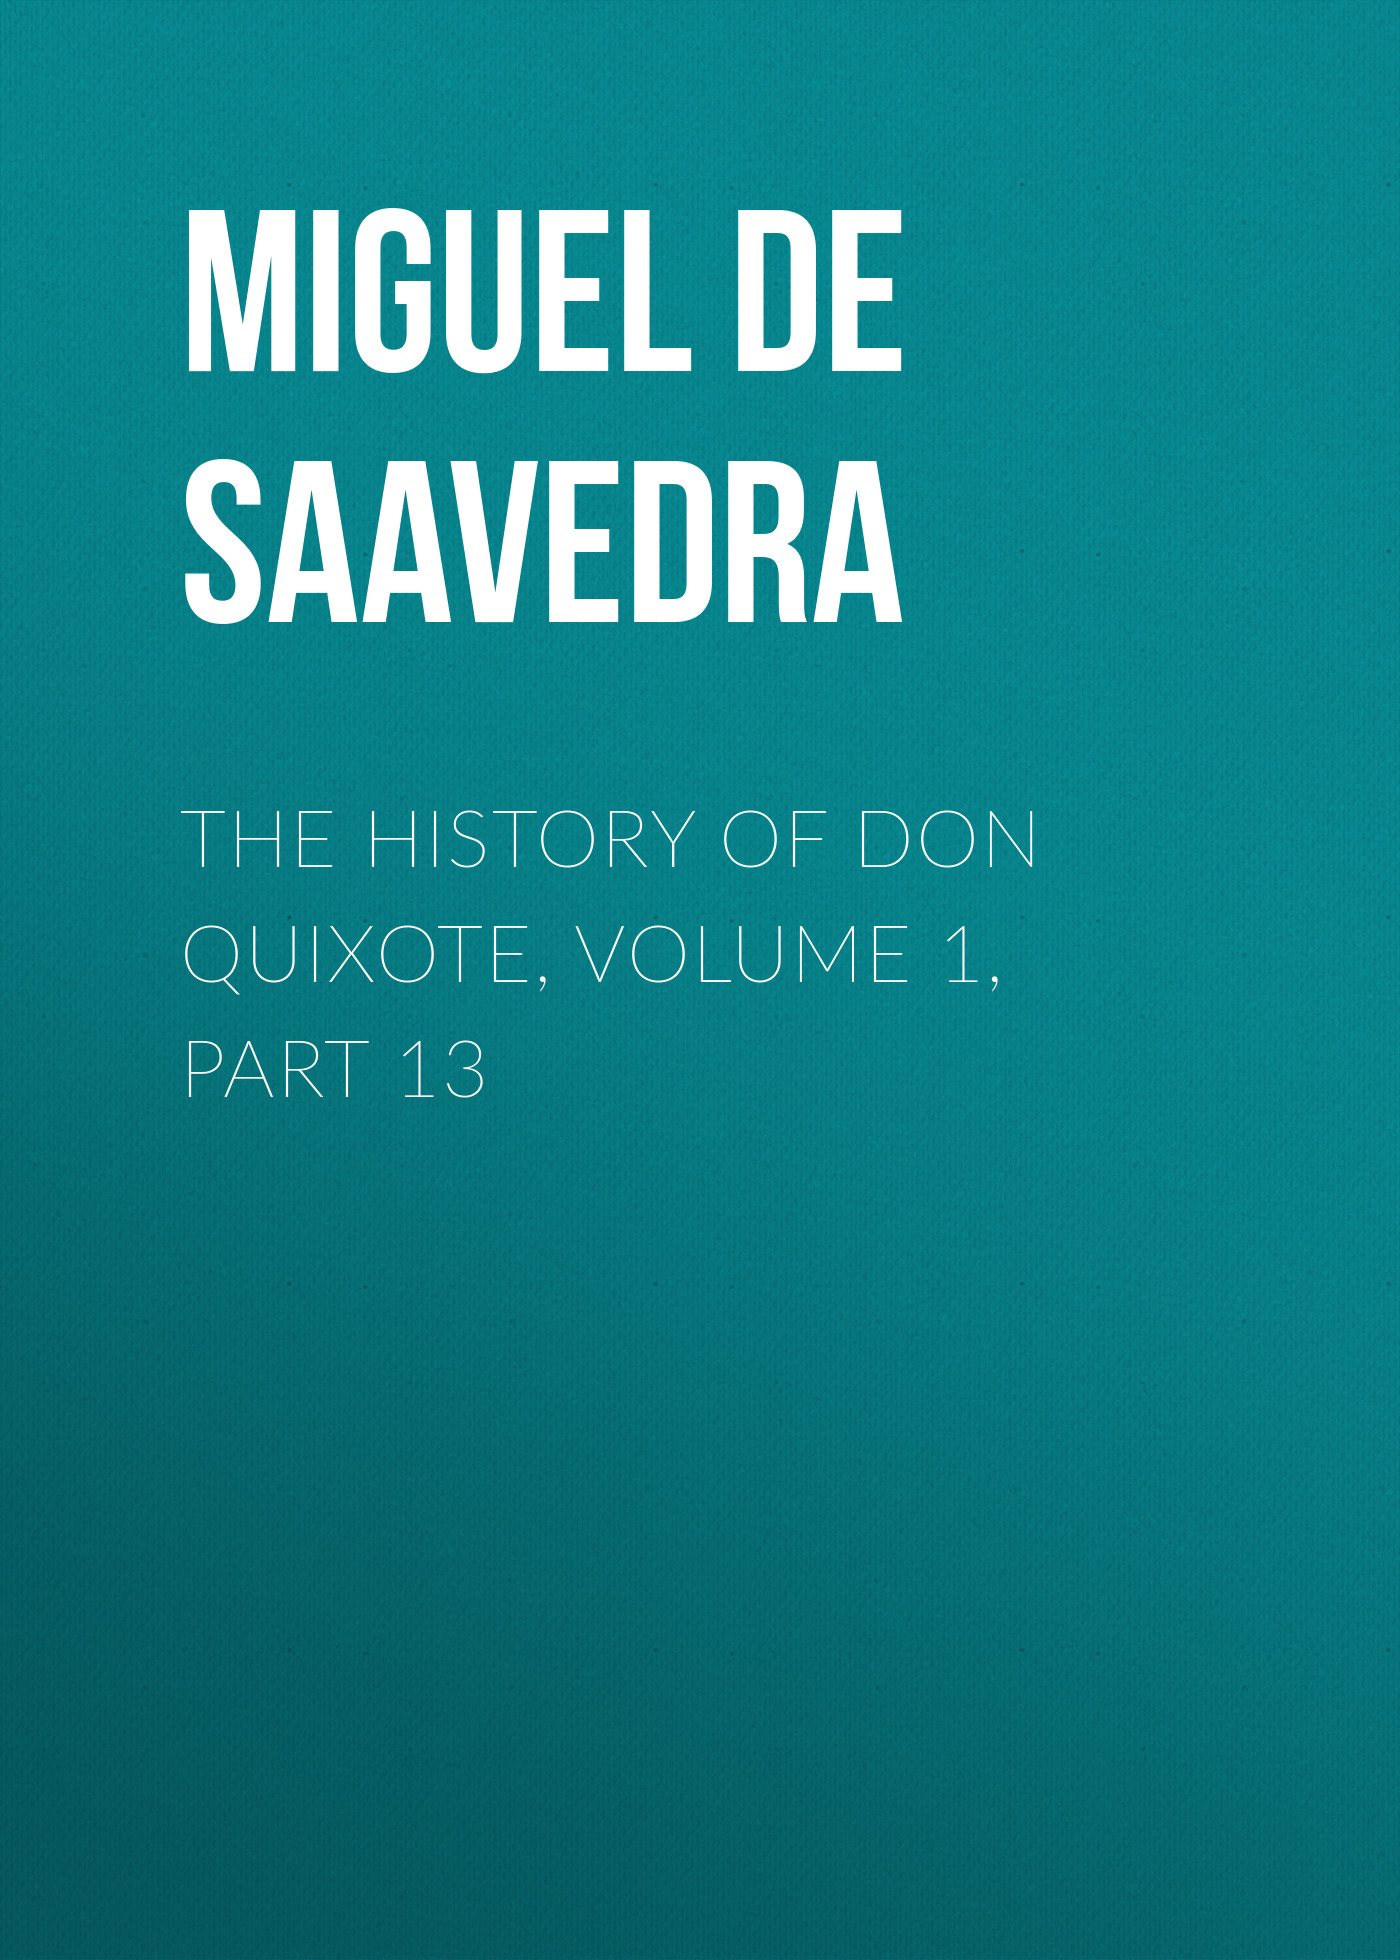 the history of don quixote volume 1 part 13